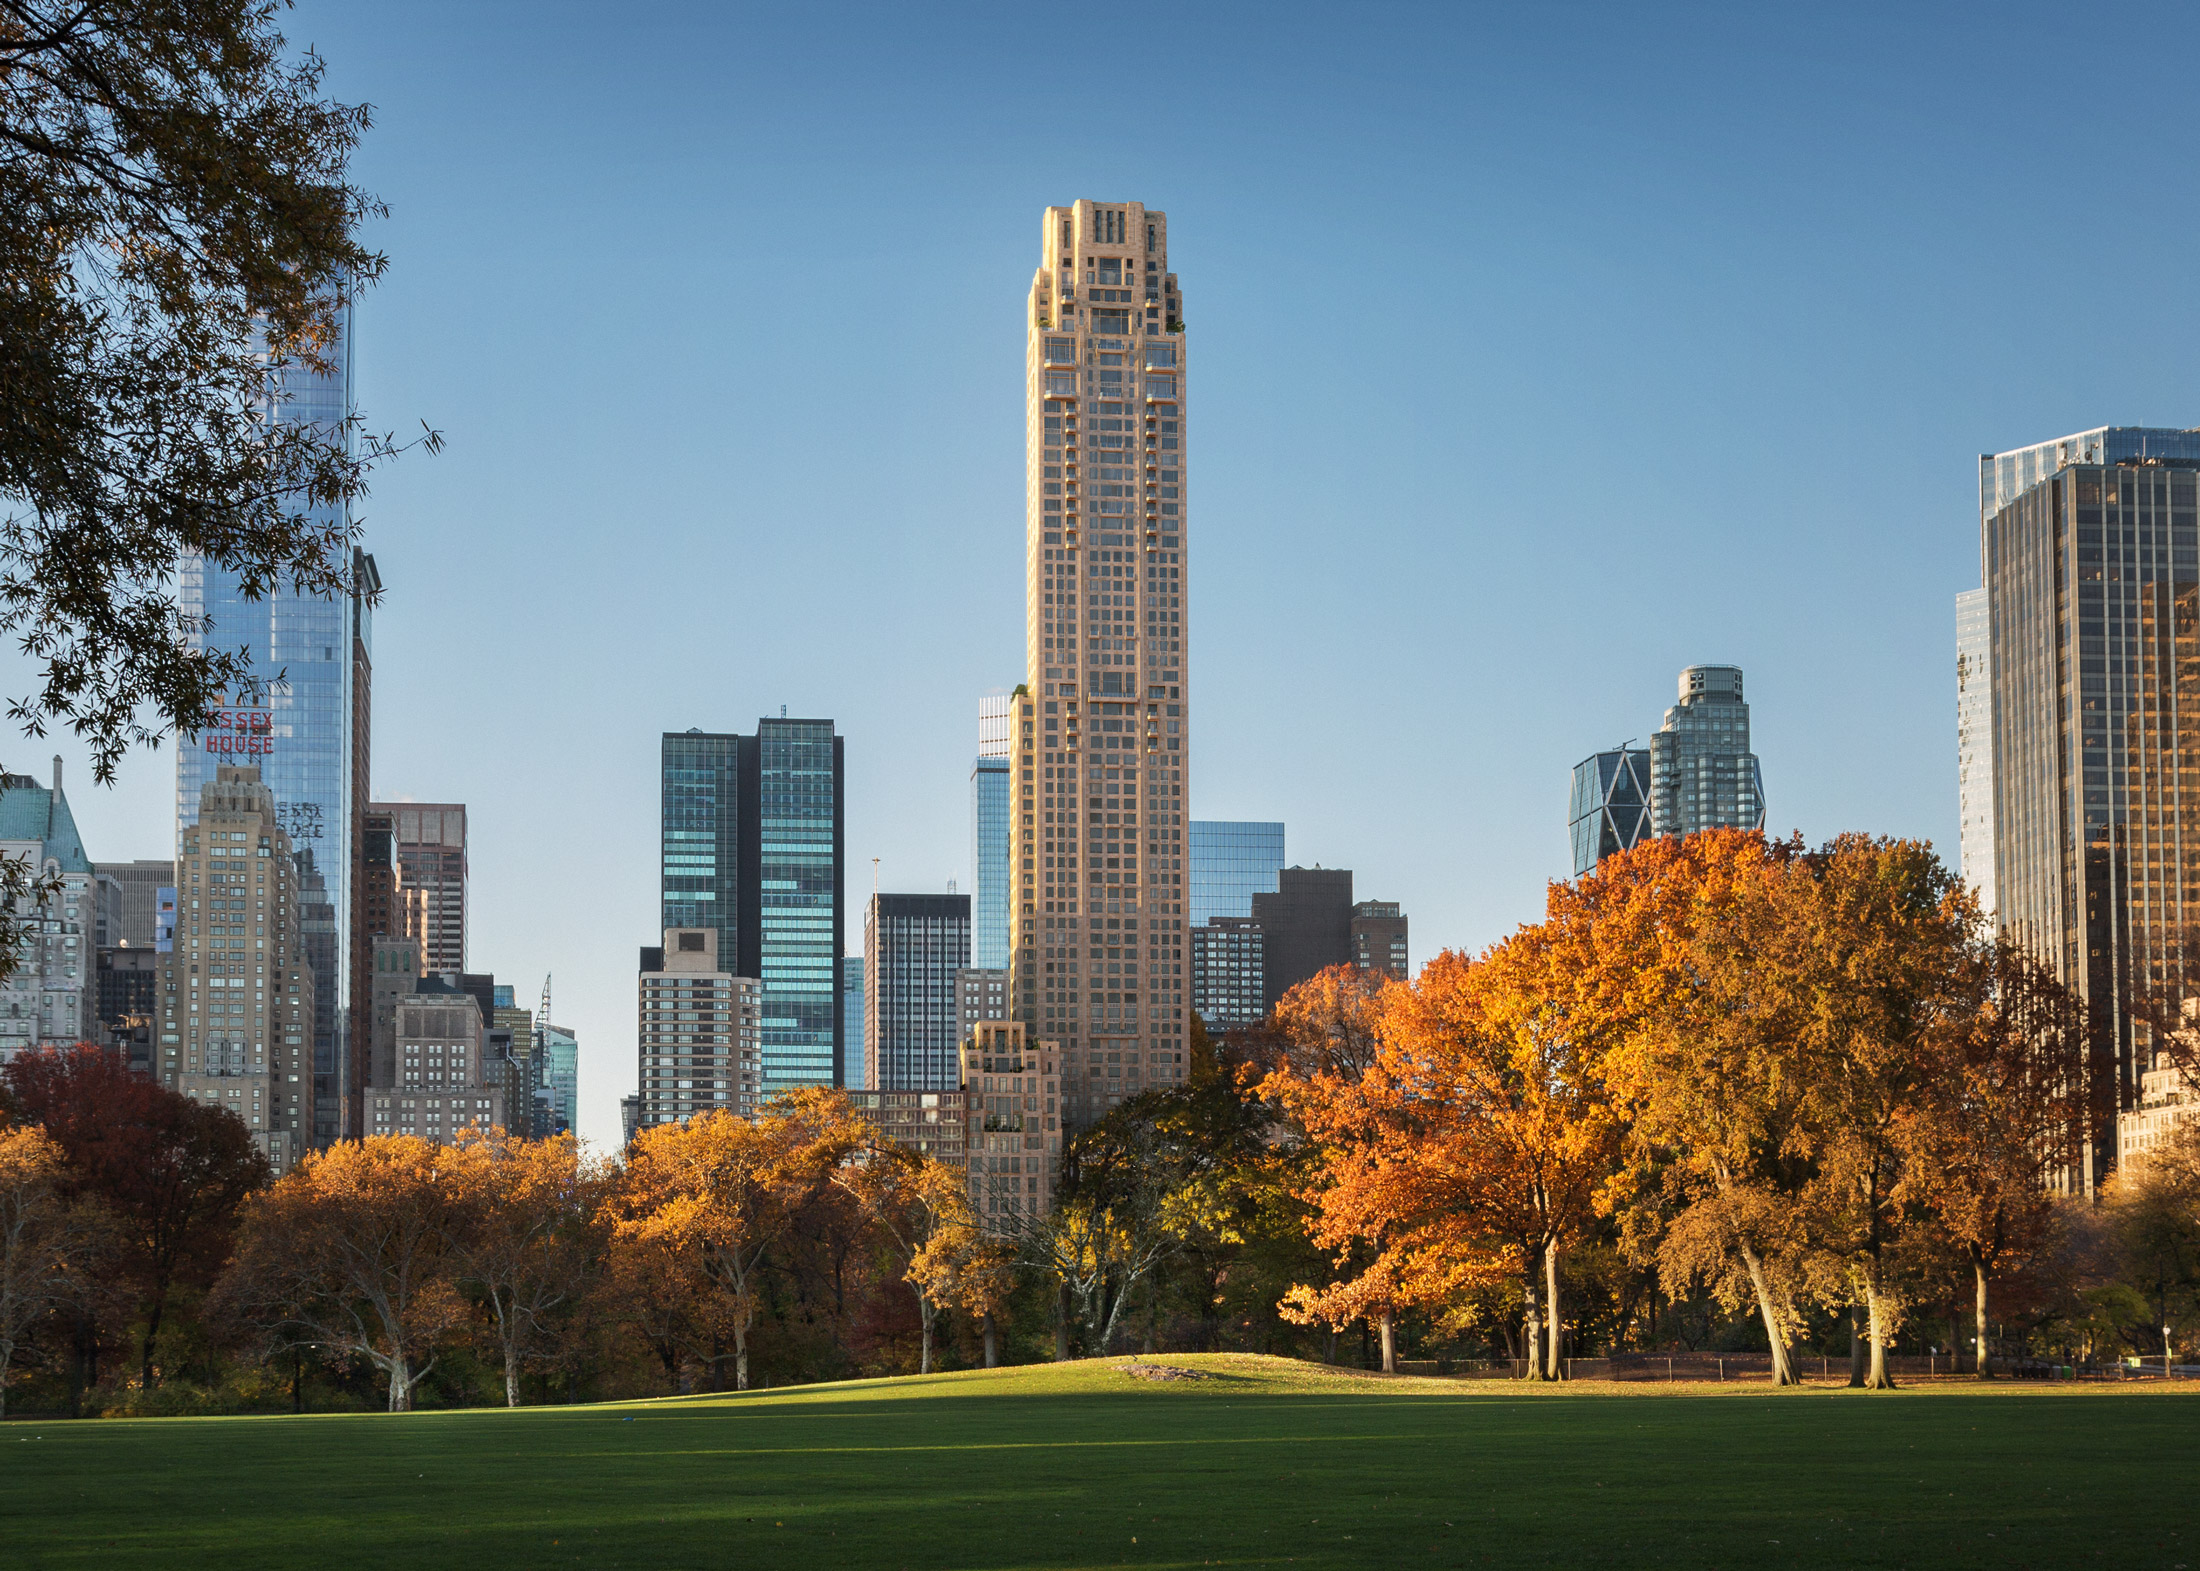 Architectural Rendering of the view from the park of the 220 Central Park South project located in Midtown, New York City